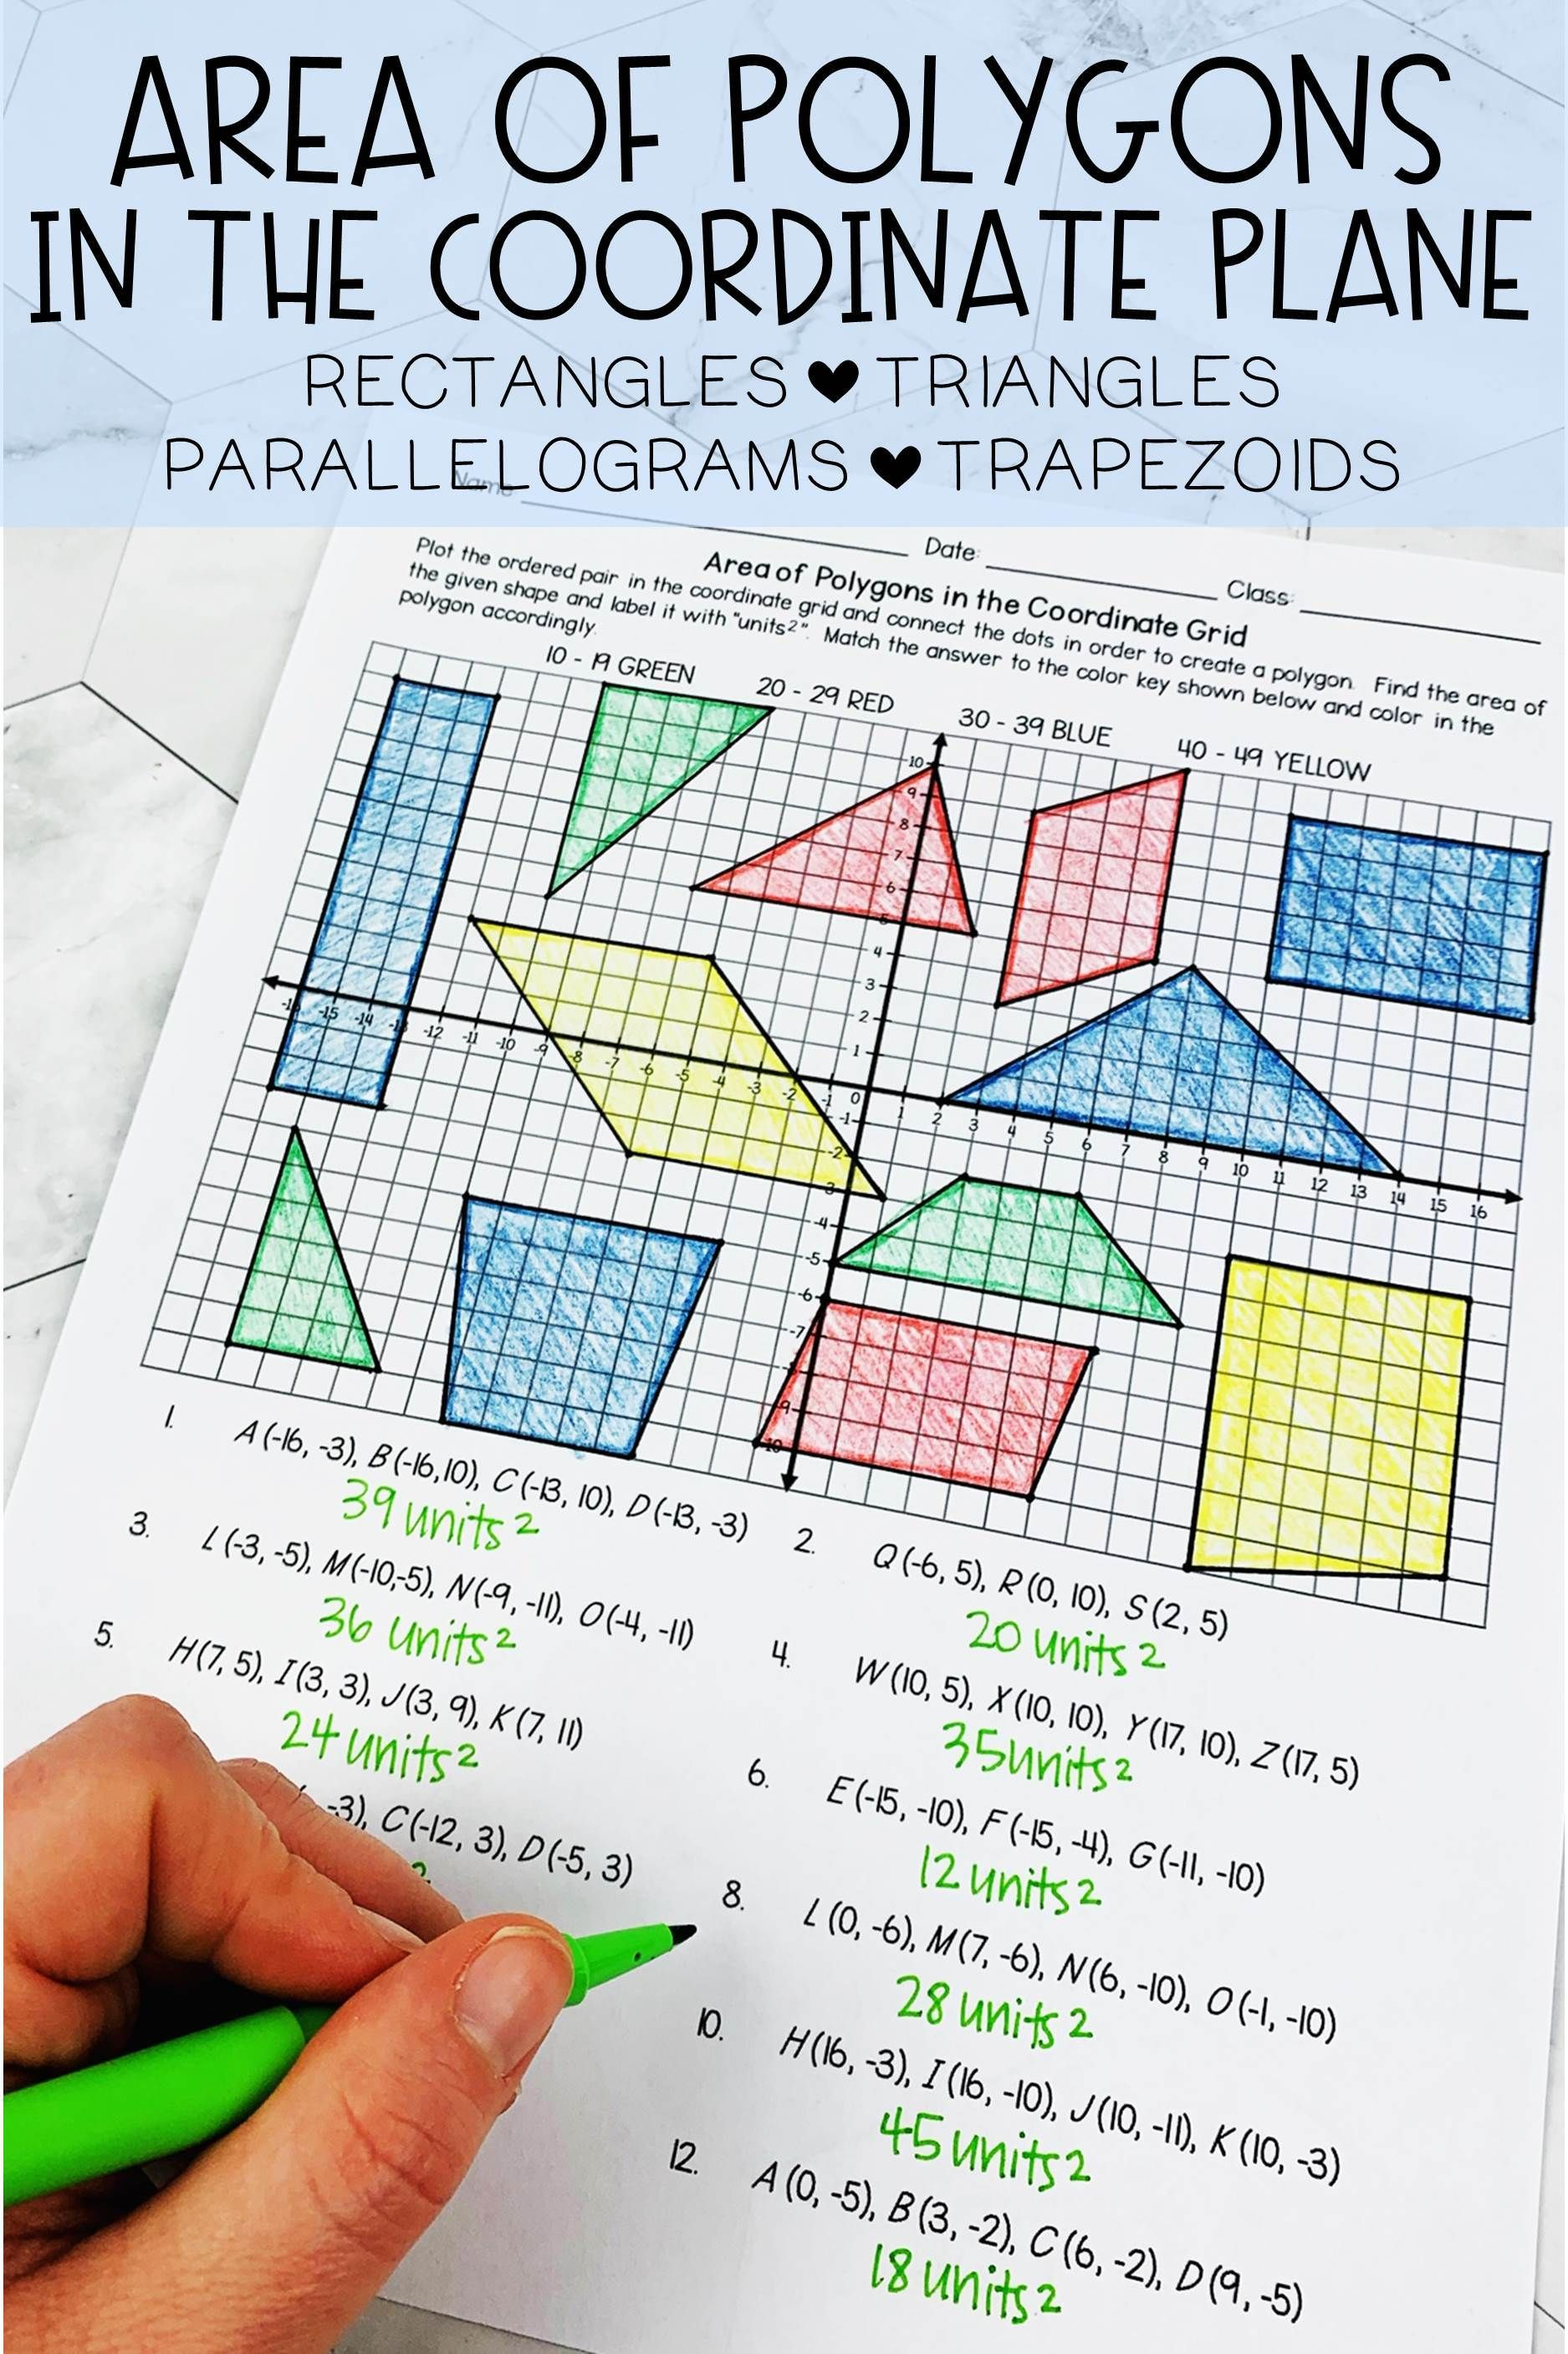 Area Of Polygons In The Coordinate Plane Coloring Activity Coordinate Plane 6th Grade Activities Coordinate Plane Activity